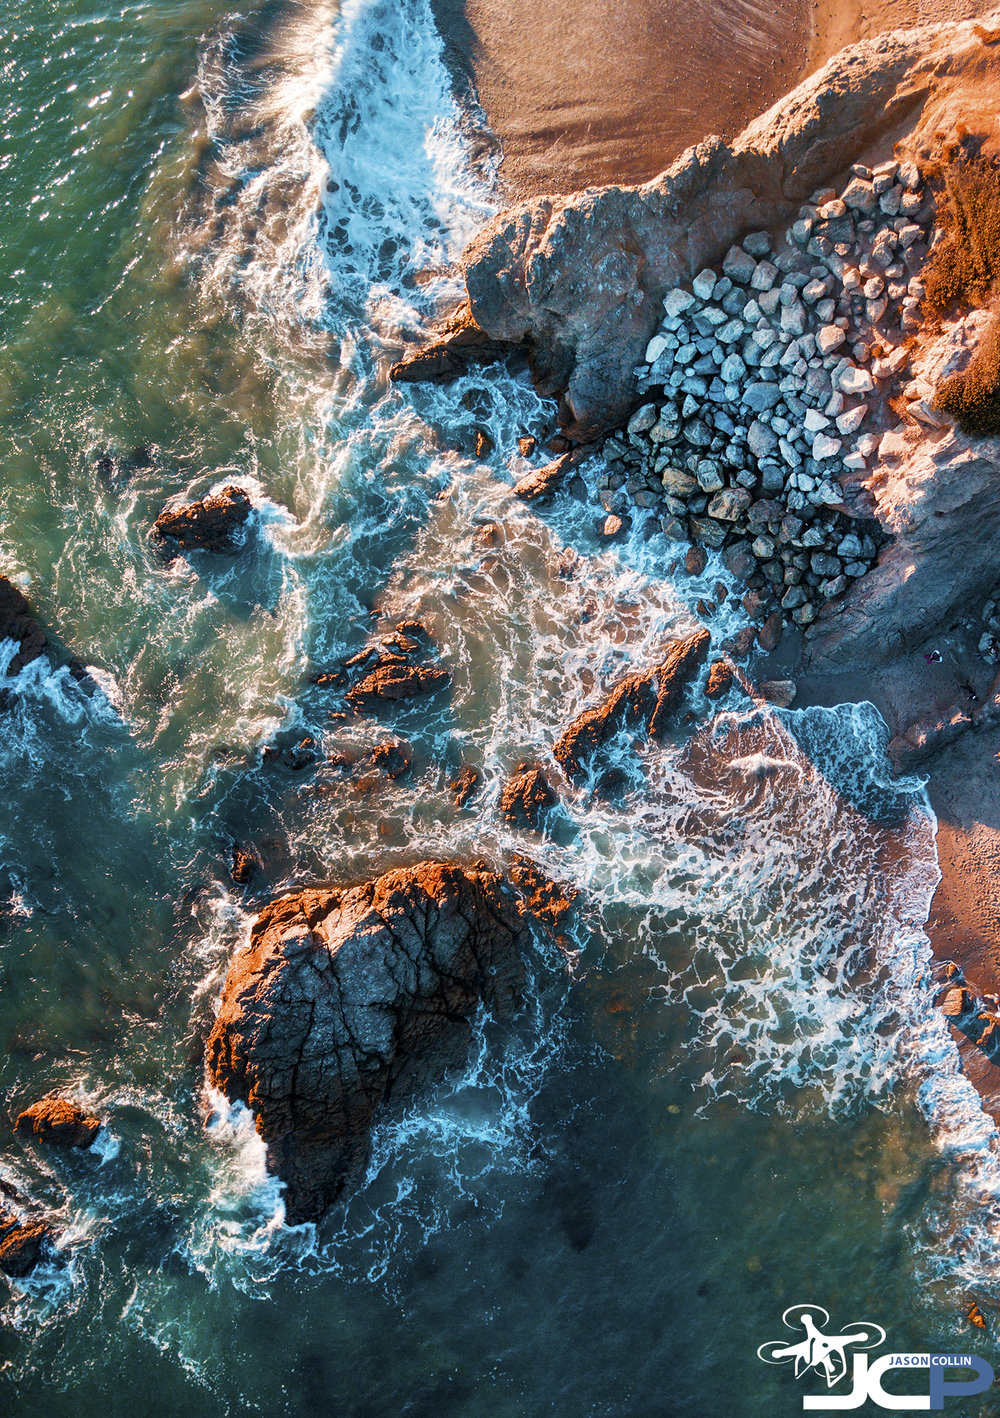 malibu-coast-leo-carillo-drone-photo.jpg